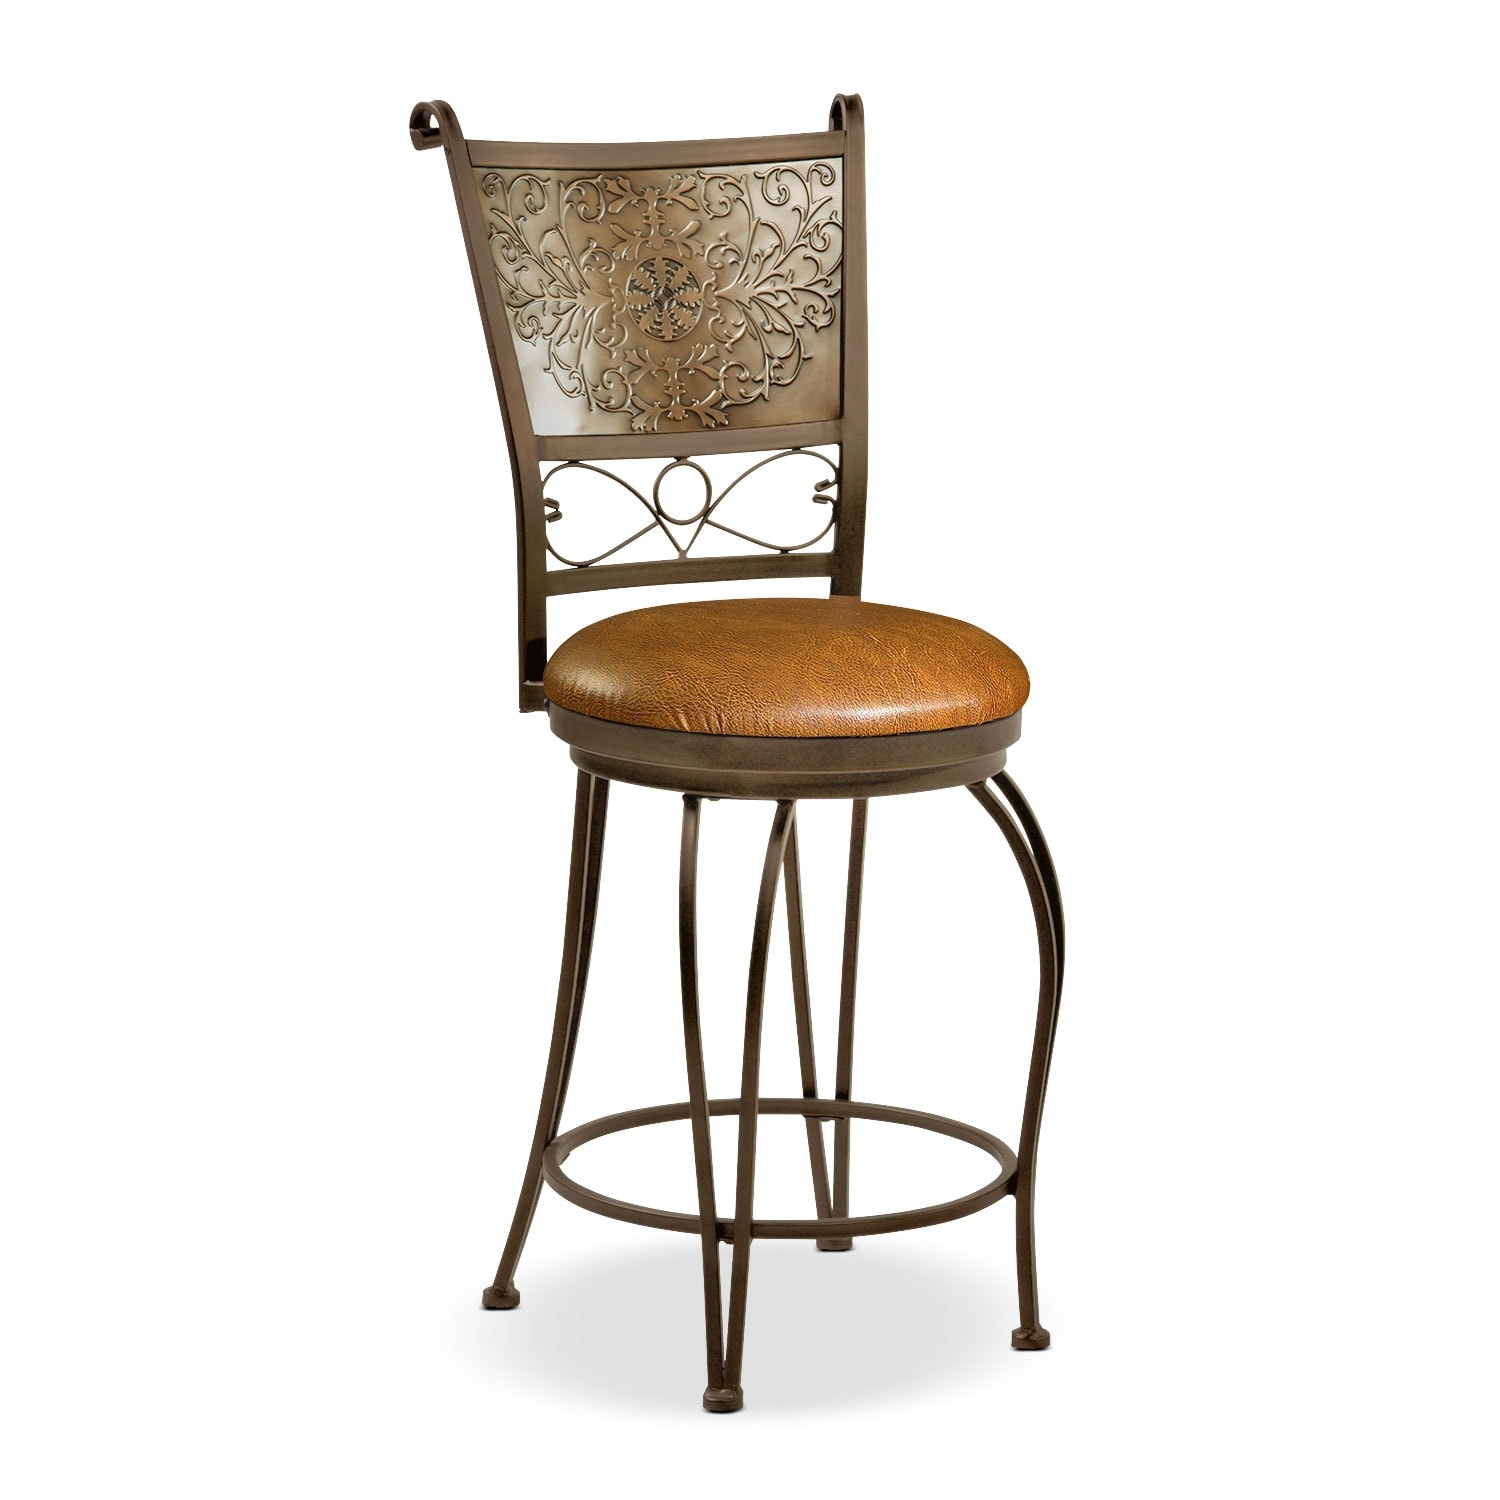 Darby Counter-Height Stool - Brown